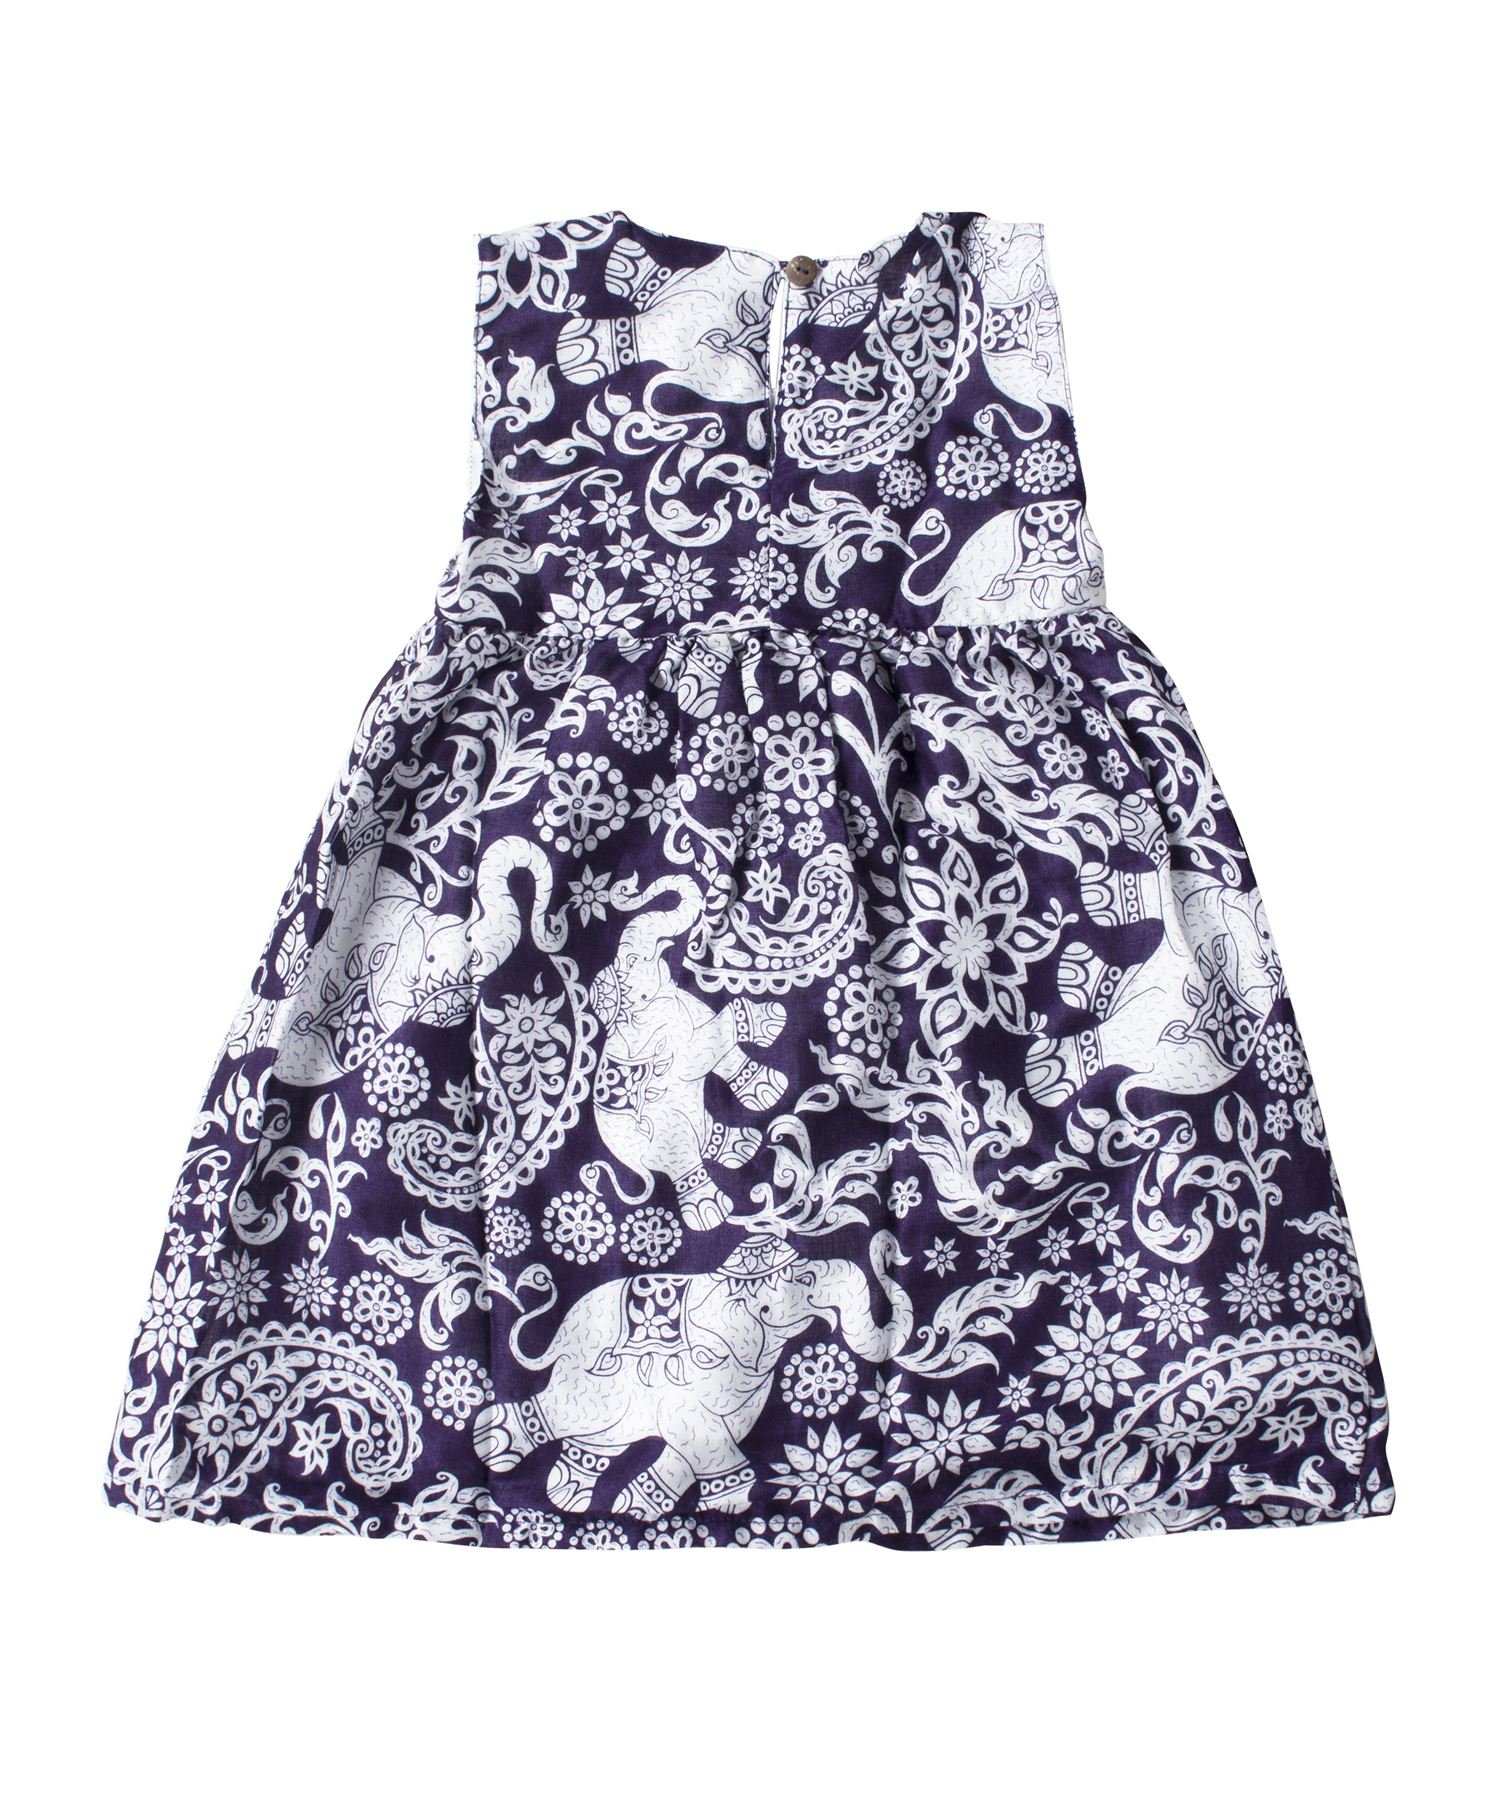 Lofbaz Girls Printed Rayon Sleeveless Tea Dresses - Elephant 4 Purple - 4-5Y